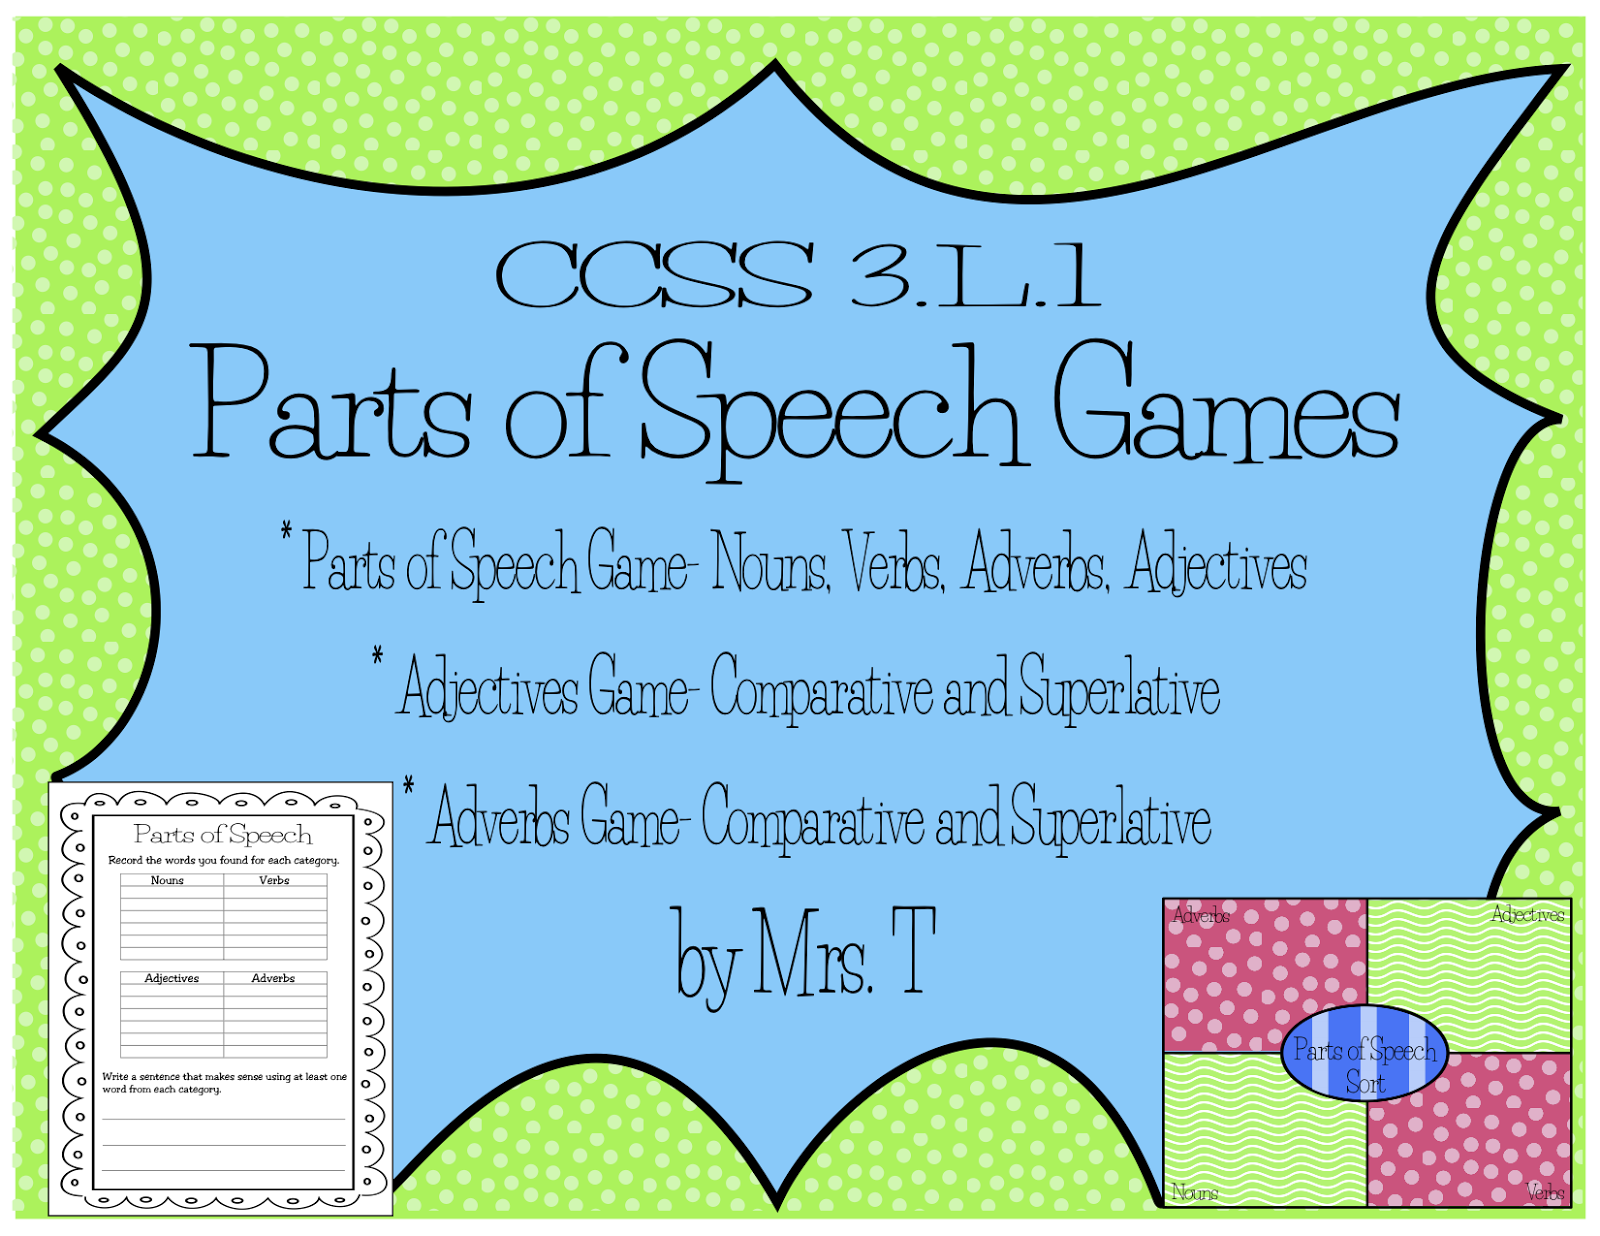 8 parts of speech game